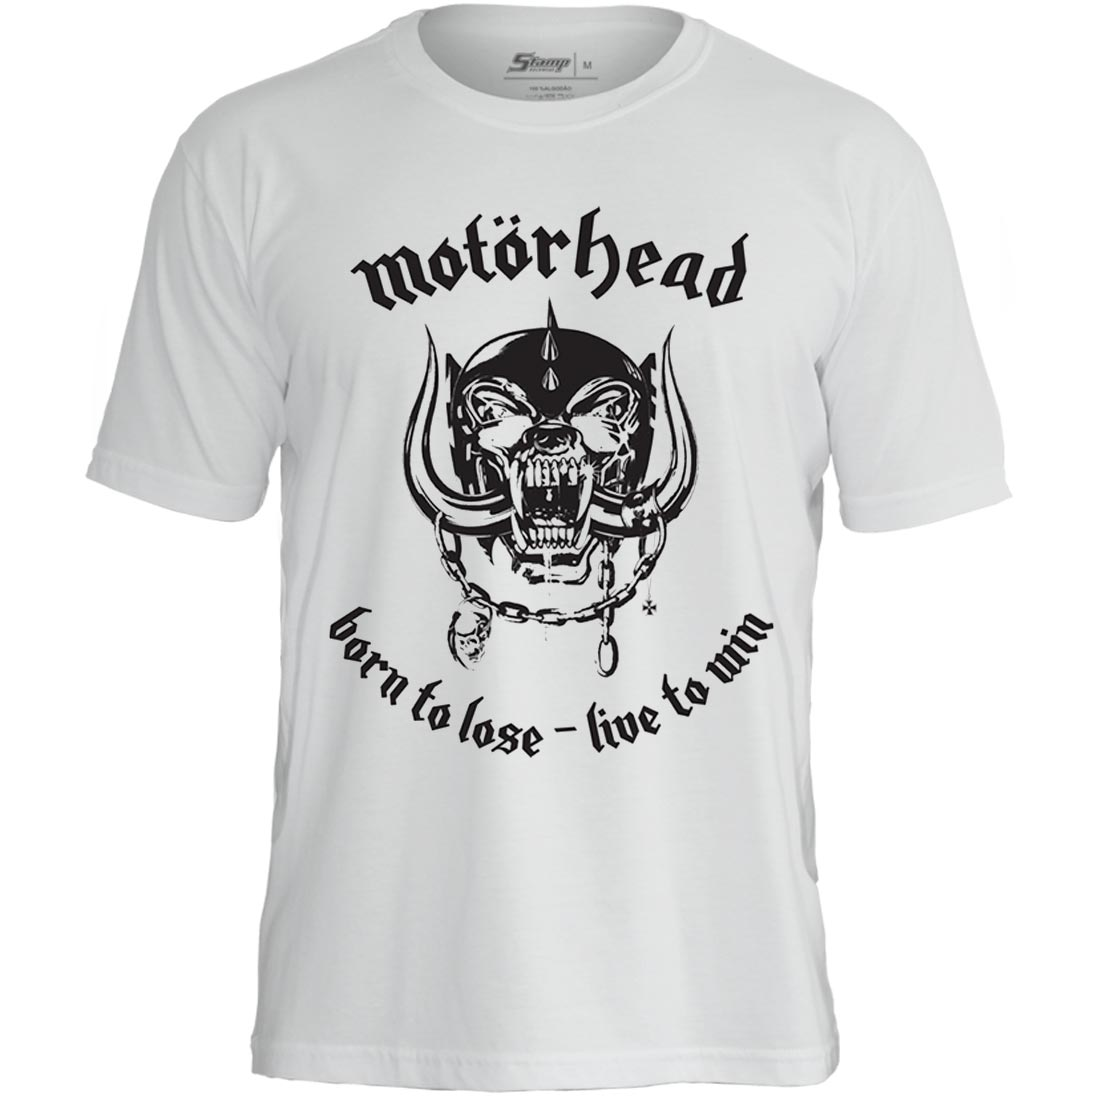 Camiseta Motorhead Born to Lose, Live to Win